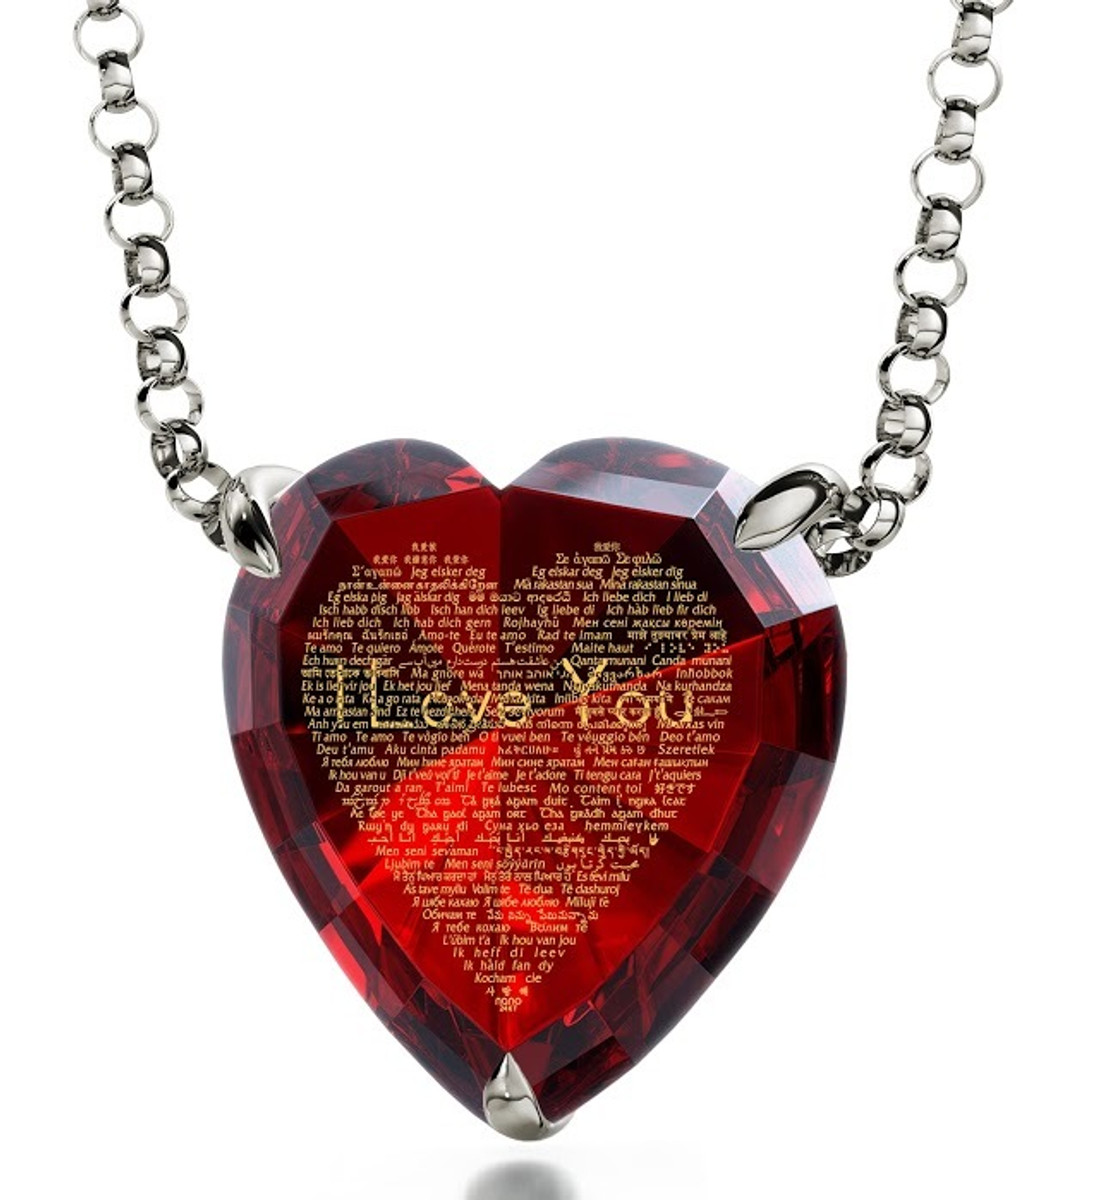 Silver Heart I Love You in 120 Languages necklace from Inspirational Jewelry